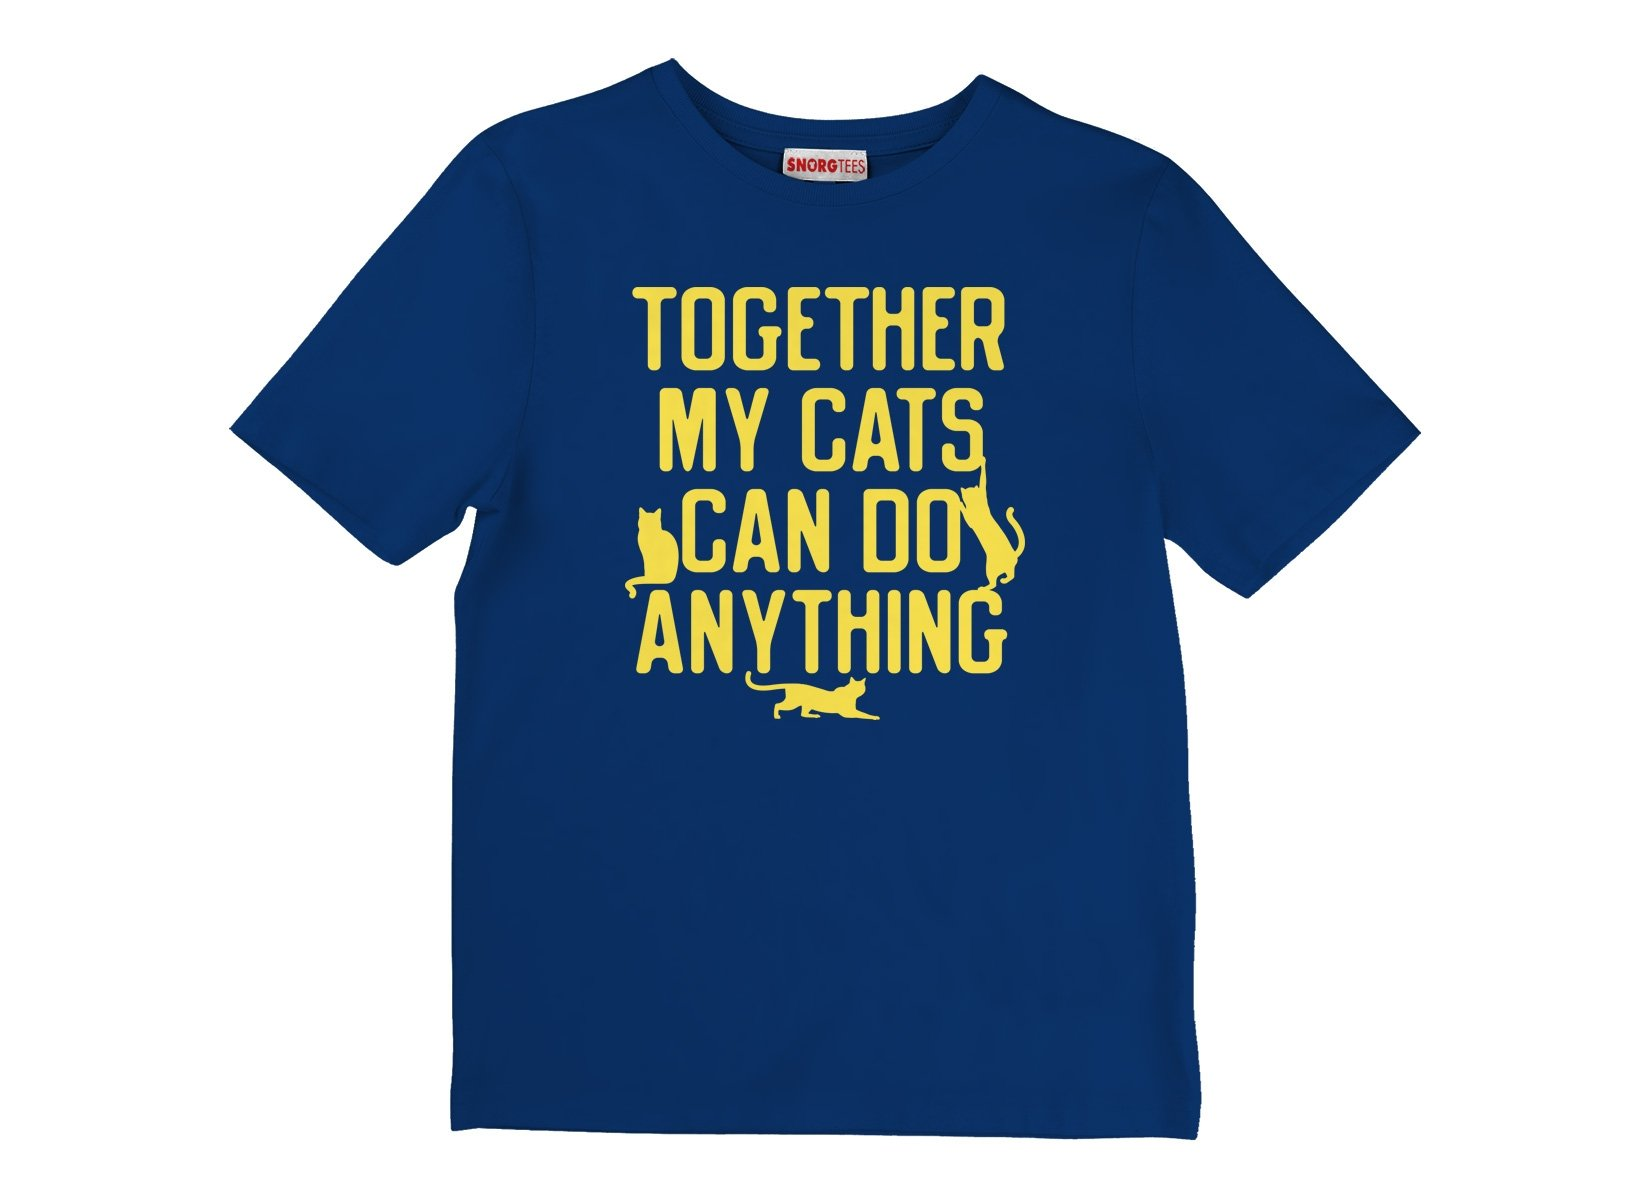 Together My Cats Can Do Anything on Kids T-Shirt